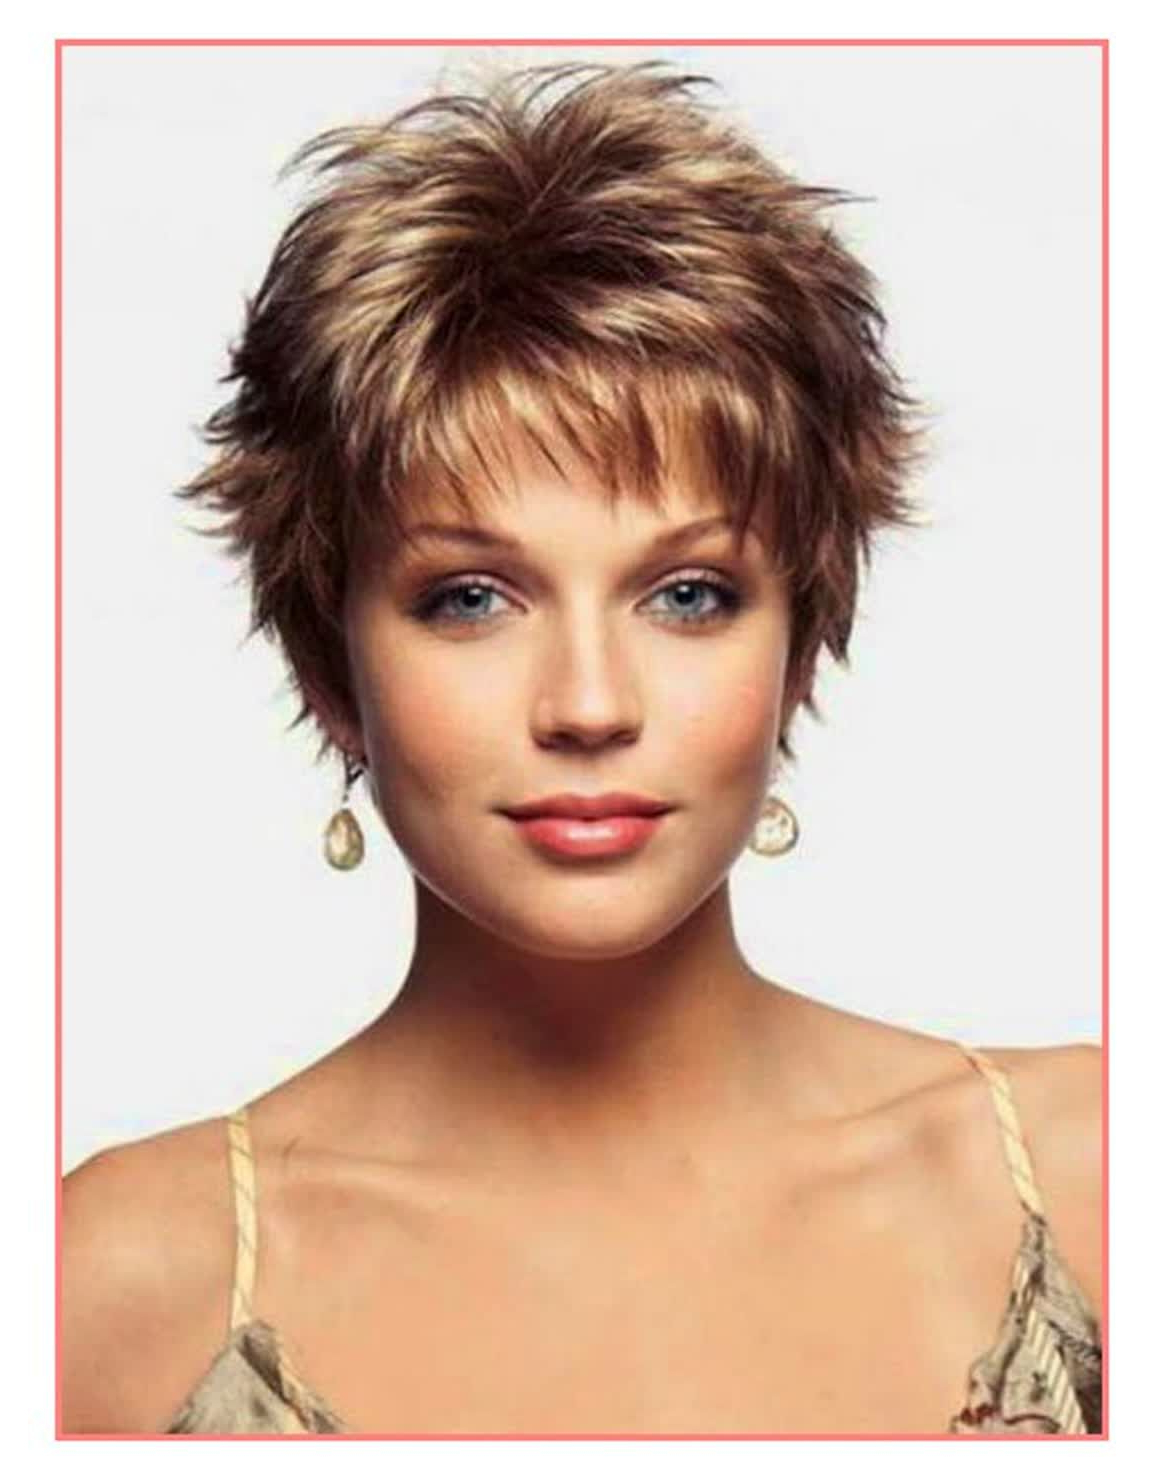 The Haircuts Short Hairstyles For Asian Women Over 40    Pixies With Regard To Short Funky Hairstyles For Over  (View 19 of 25)